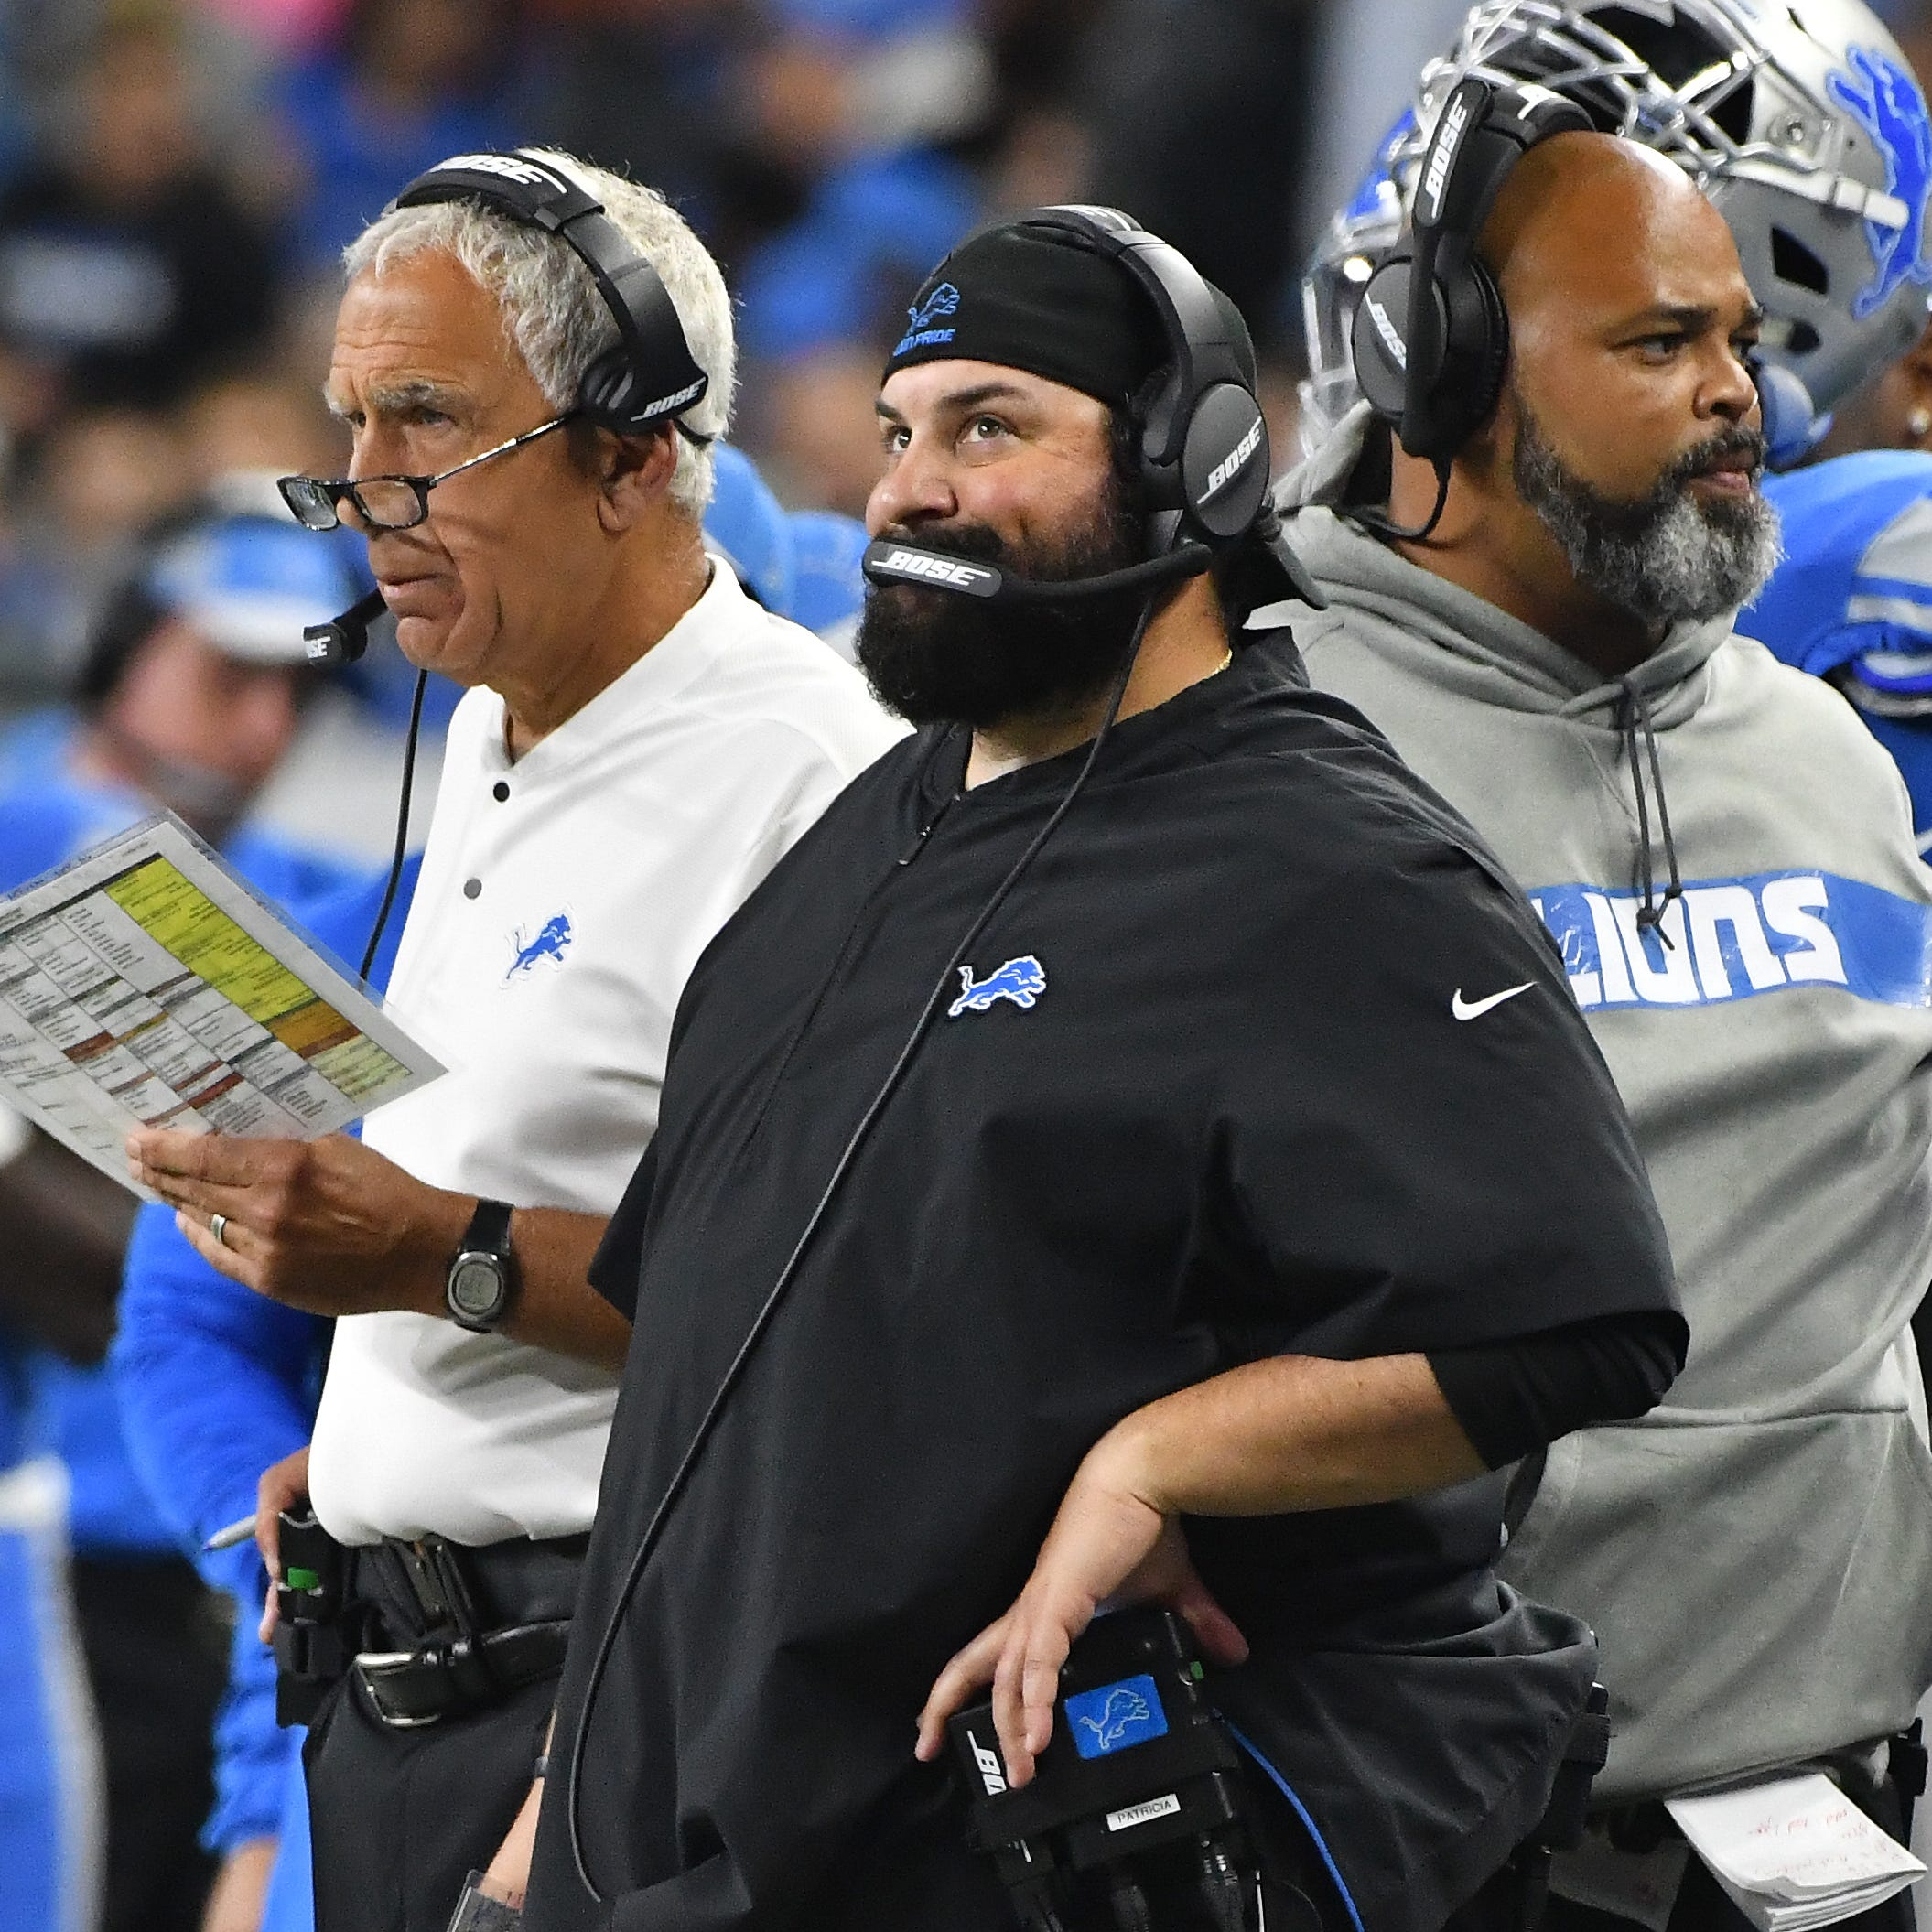 Lions mailbag: Defense should be focus of rebuild